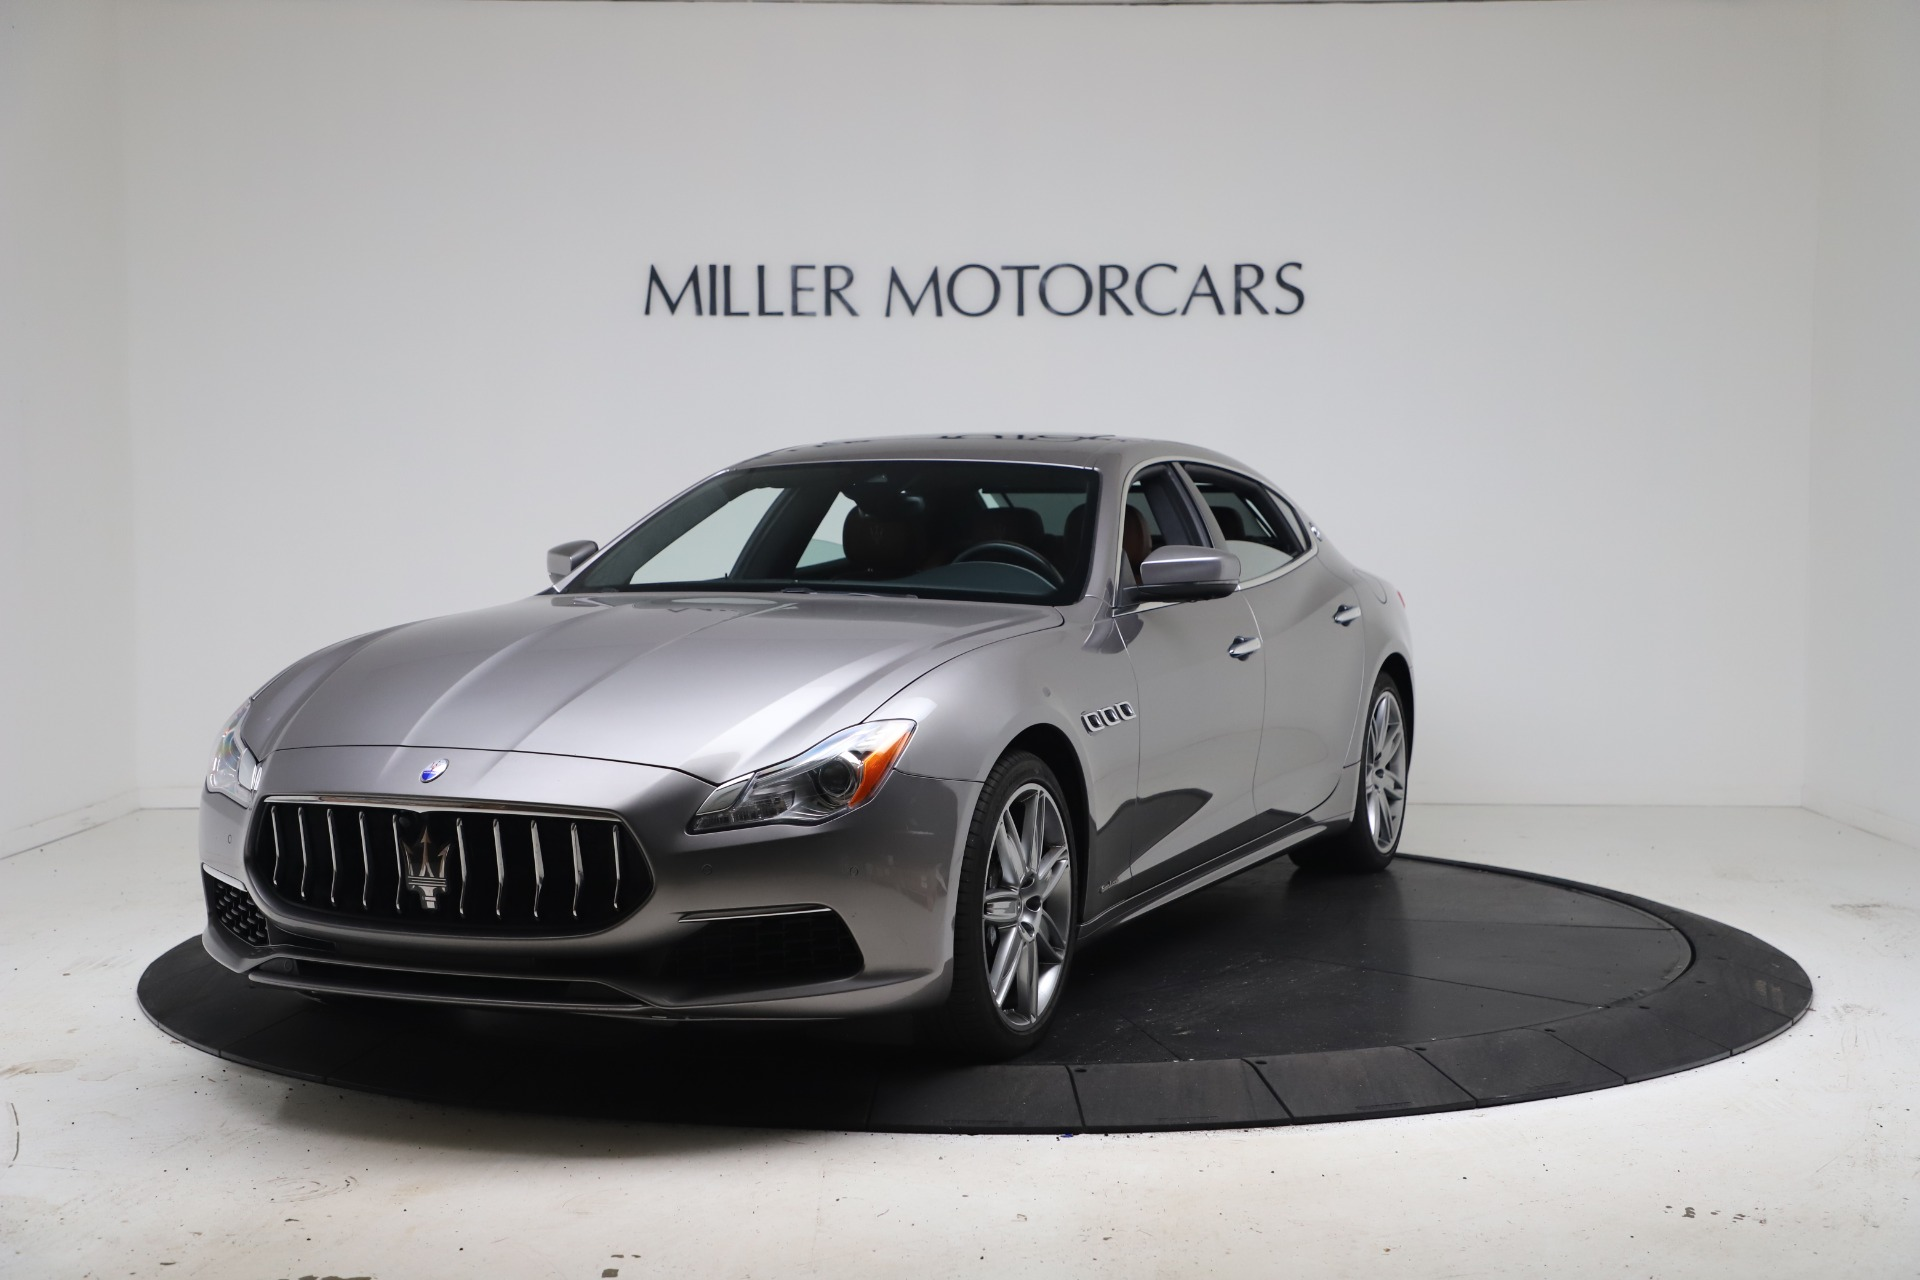 New 2017 Maserati Quattroporte SQ4 GranLusso/ Zegna for sale Sold at Alfa Romeo of Greenwich in Greenwich CT 06830 1